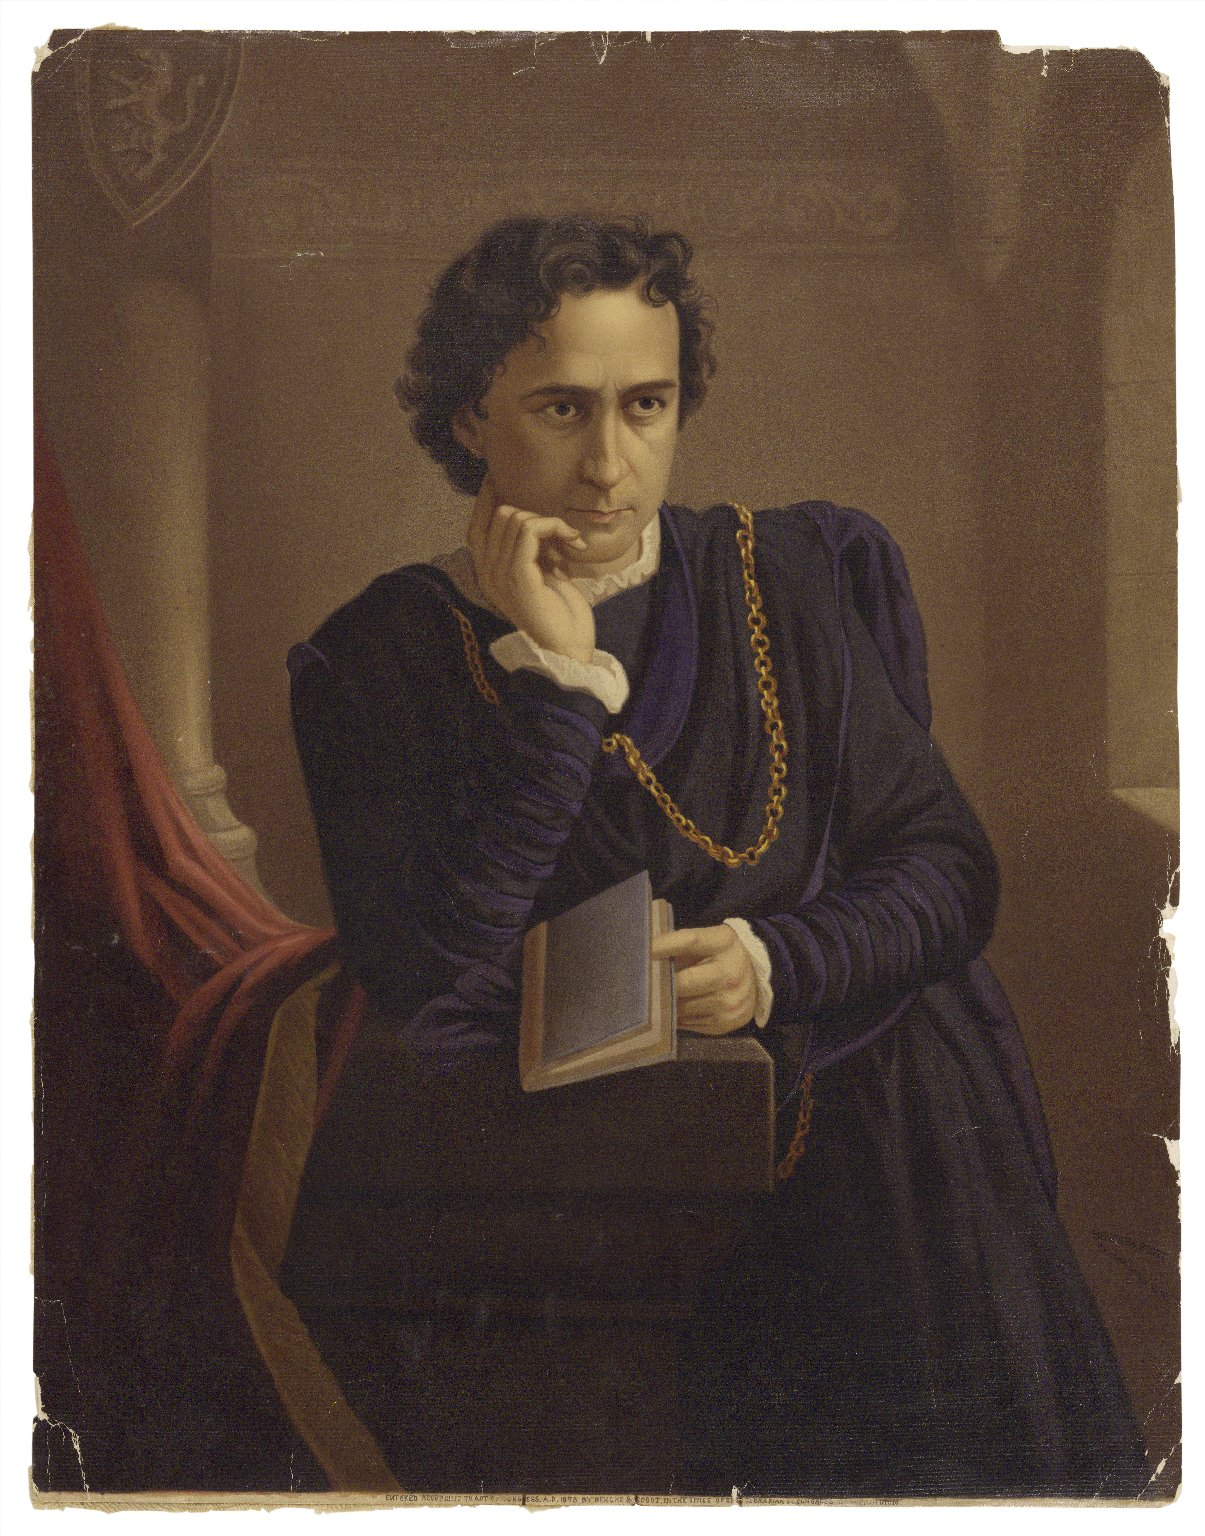 [Edwin Booth as Hamlet] [graphic].